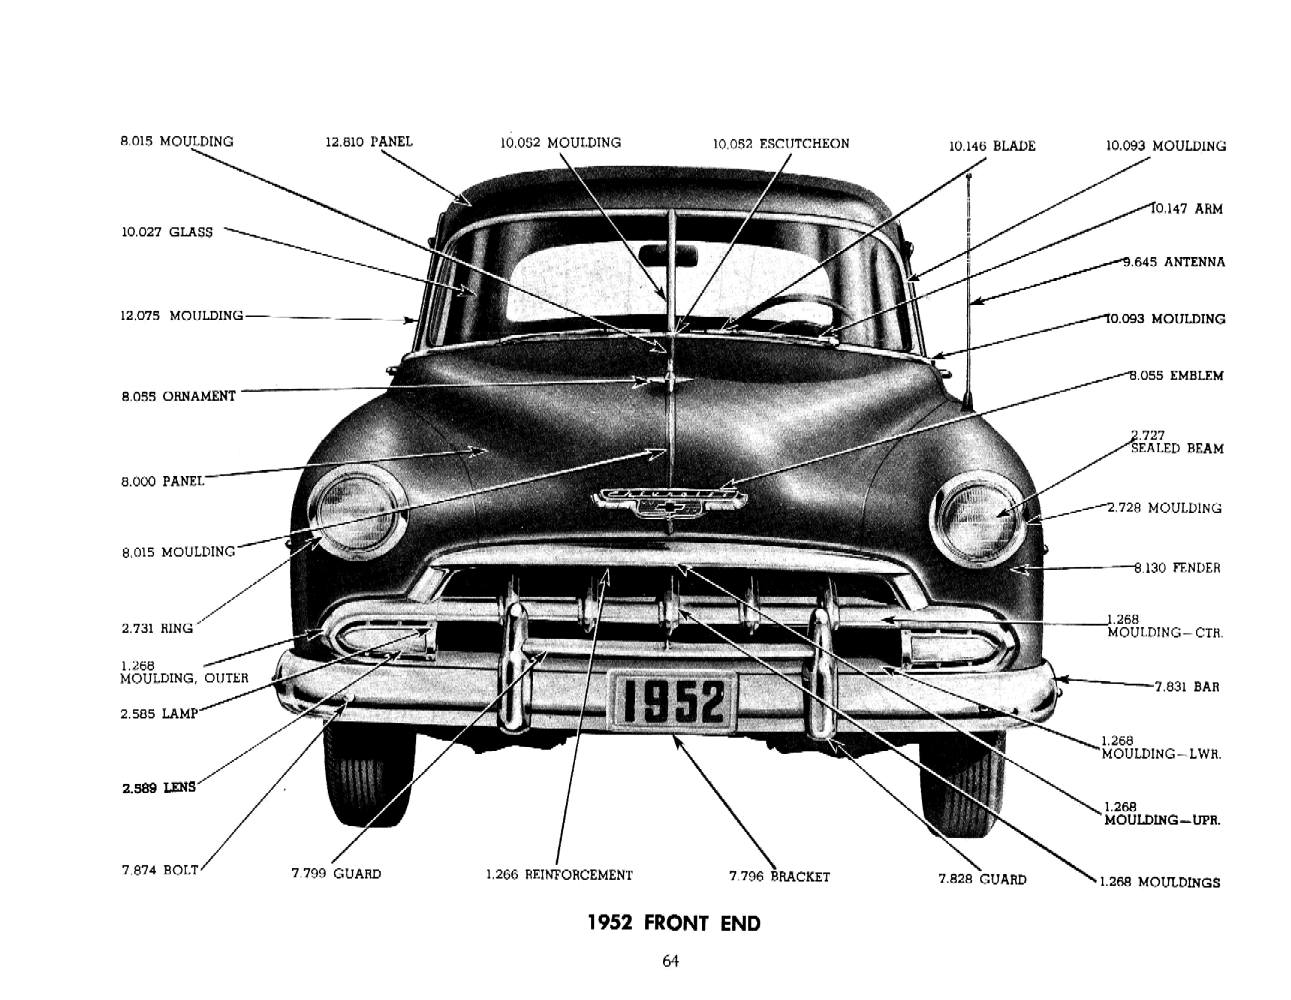 Car Parts And Accessories Catalog furthermore Truck as well Jeep Clipart Black And White furthermore 1978 Chevrolet K10 Wiring Diagram besides 354799276879397876. on old chevy truck models